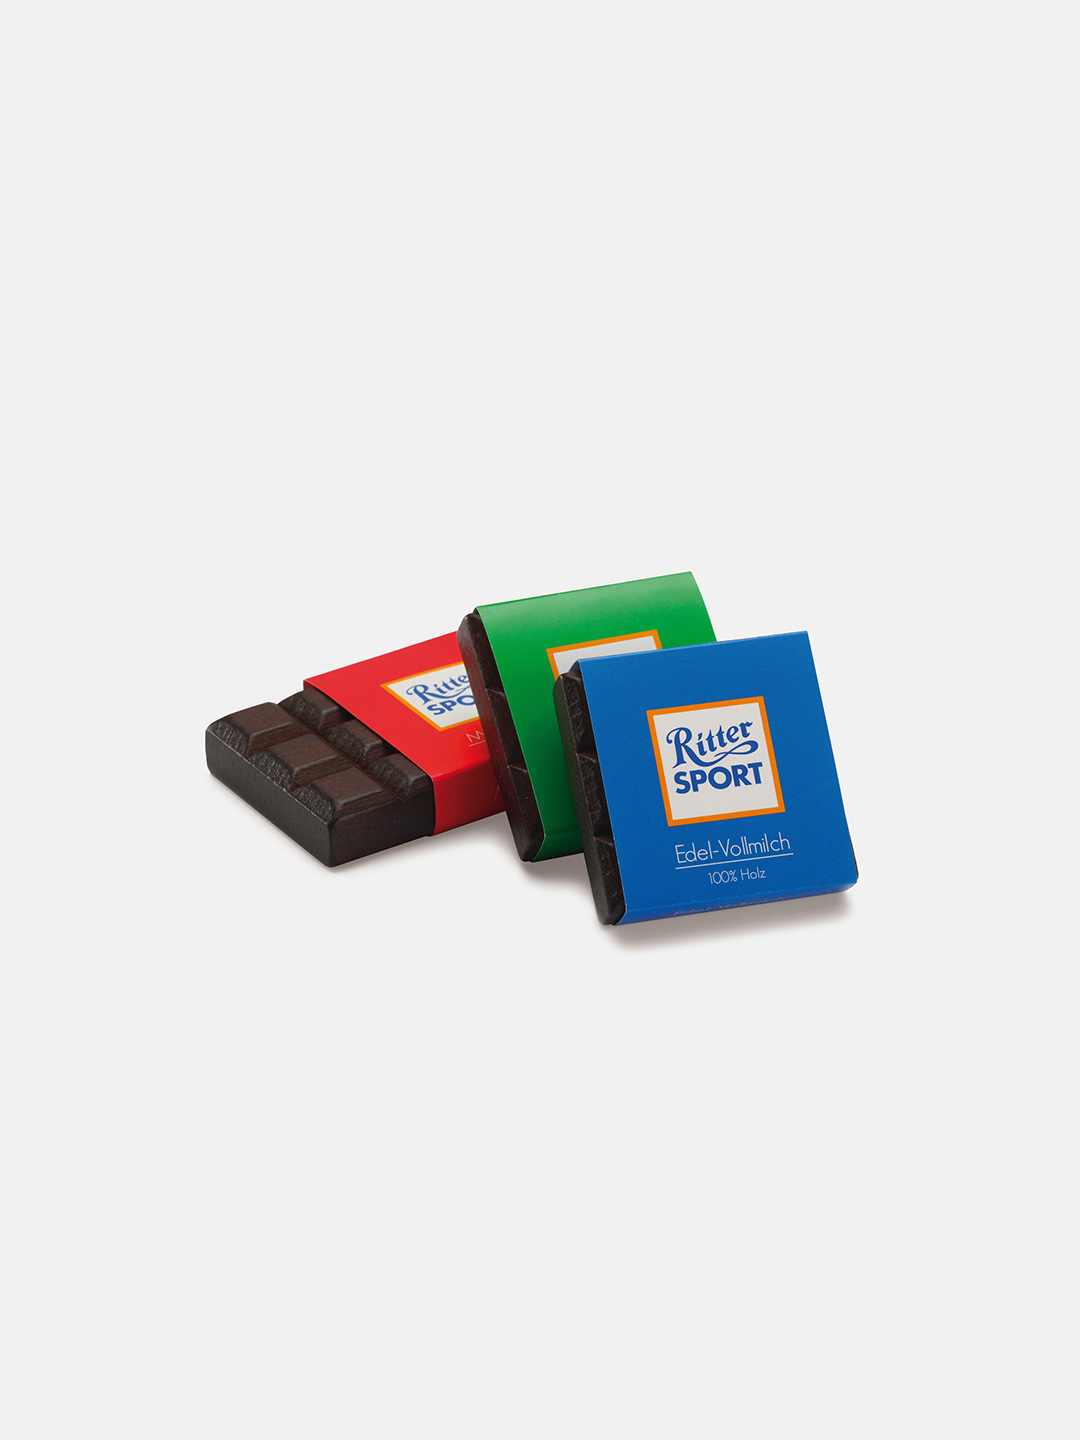 Realistic play food for toddlers – wooden Ritter Sport for play kitchen, eco-friendly and safe, made in Germany by Erzi.